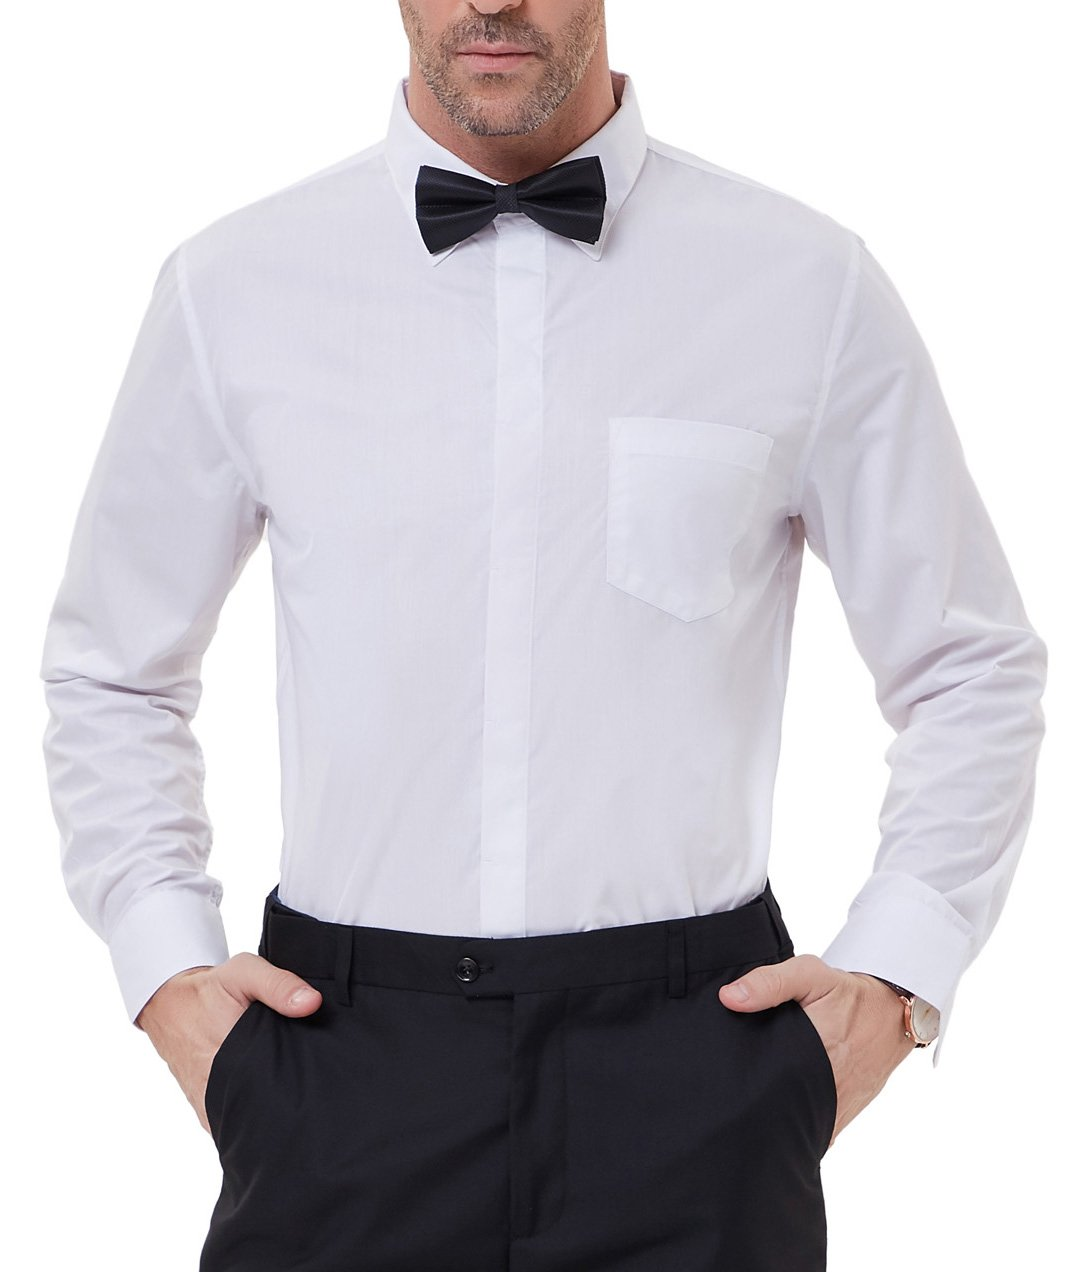 PAUL JONES Men's Business Casual Shirt Long Sleeves White Dress Shirts for Summer by PAUL JONES